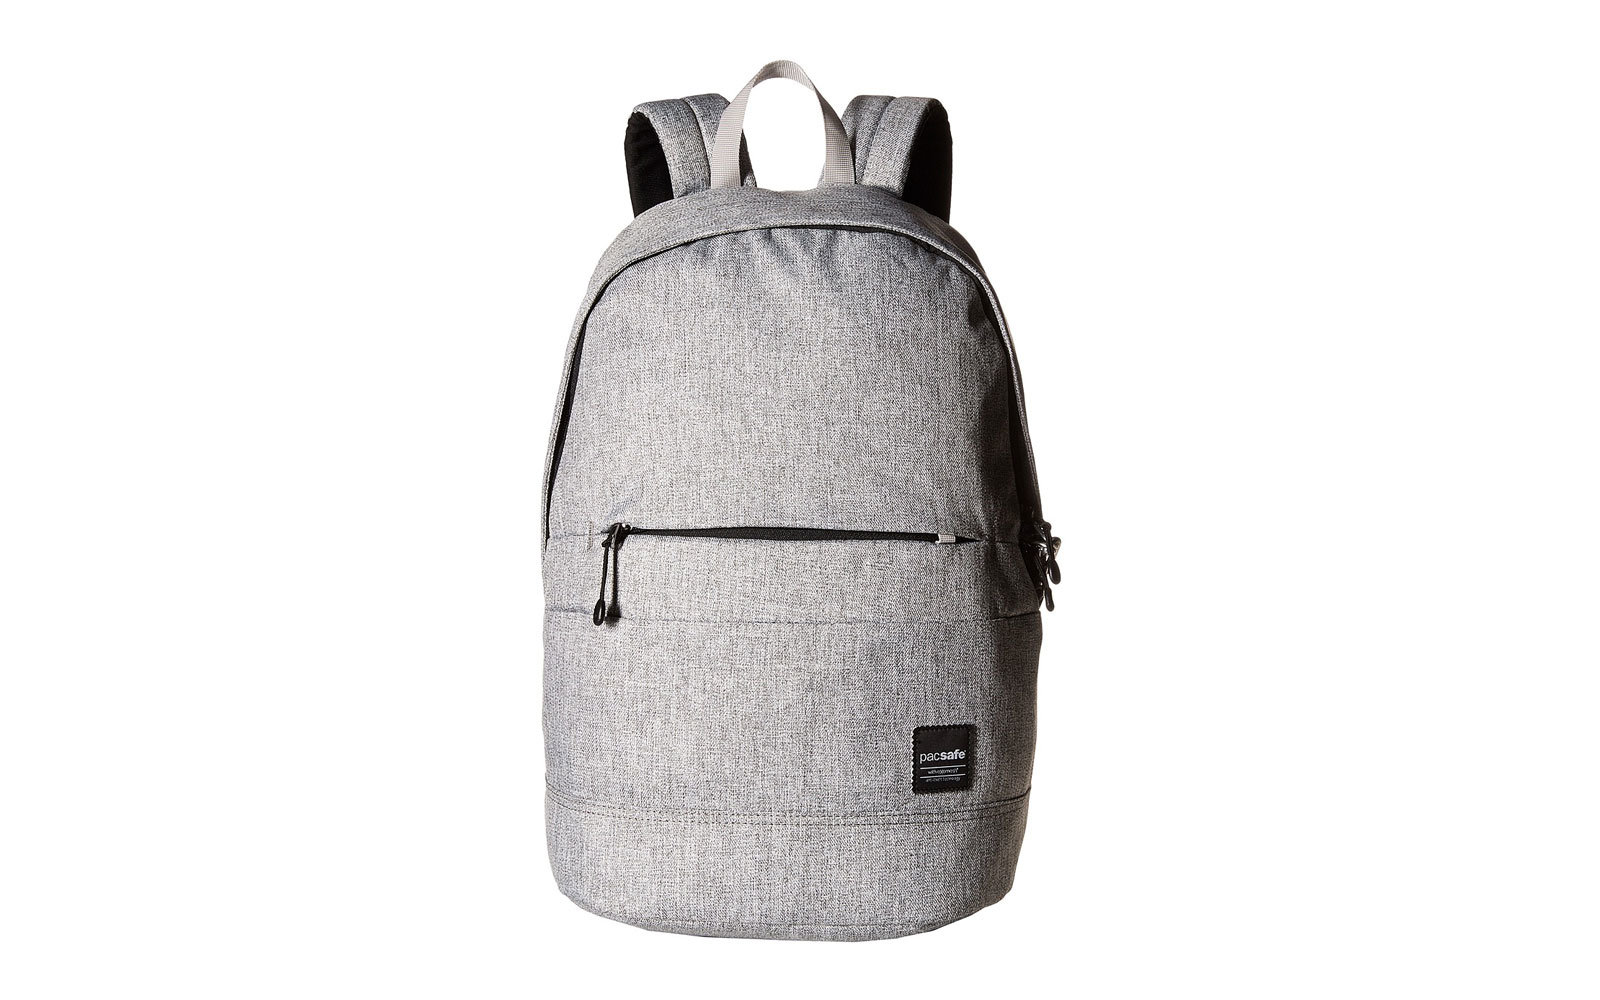 8abbf611170 The Most Stylish Travel Backpacks For Women   Travel + Leisure